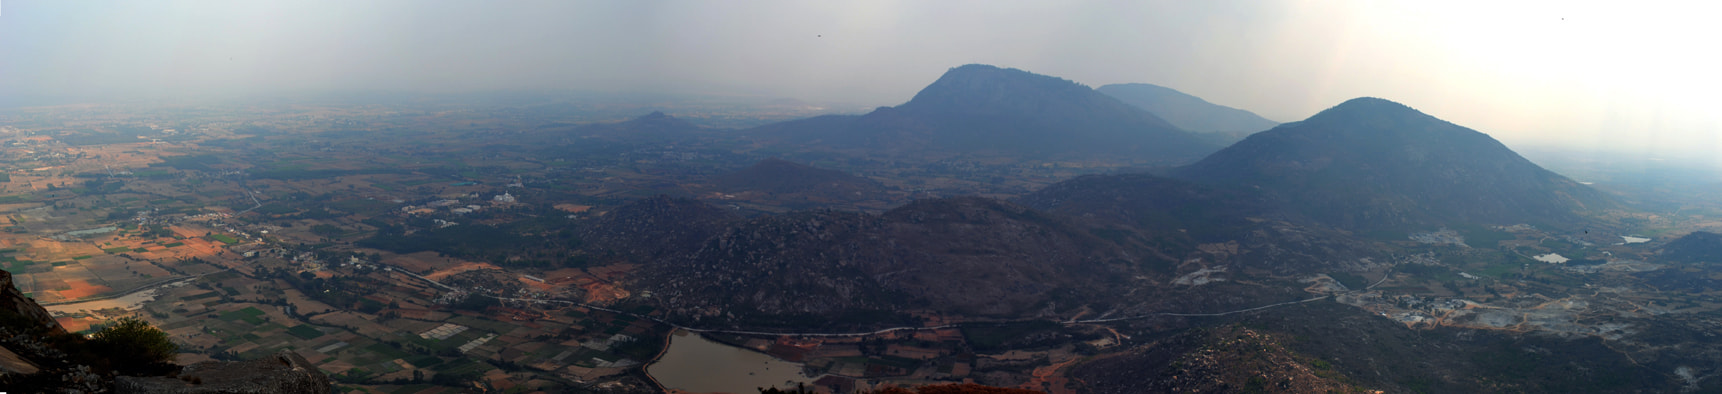 Photograph panorama by Vinay M Rao on 500px